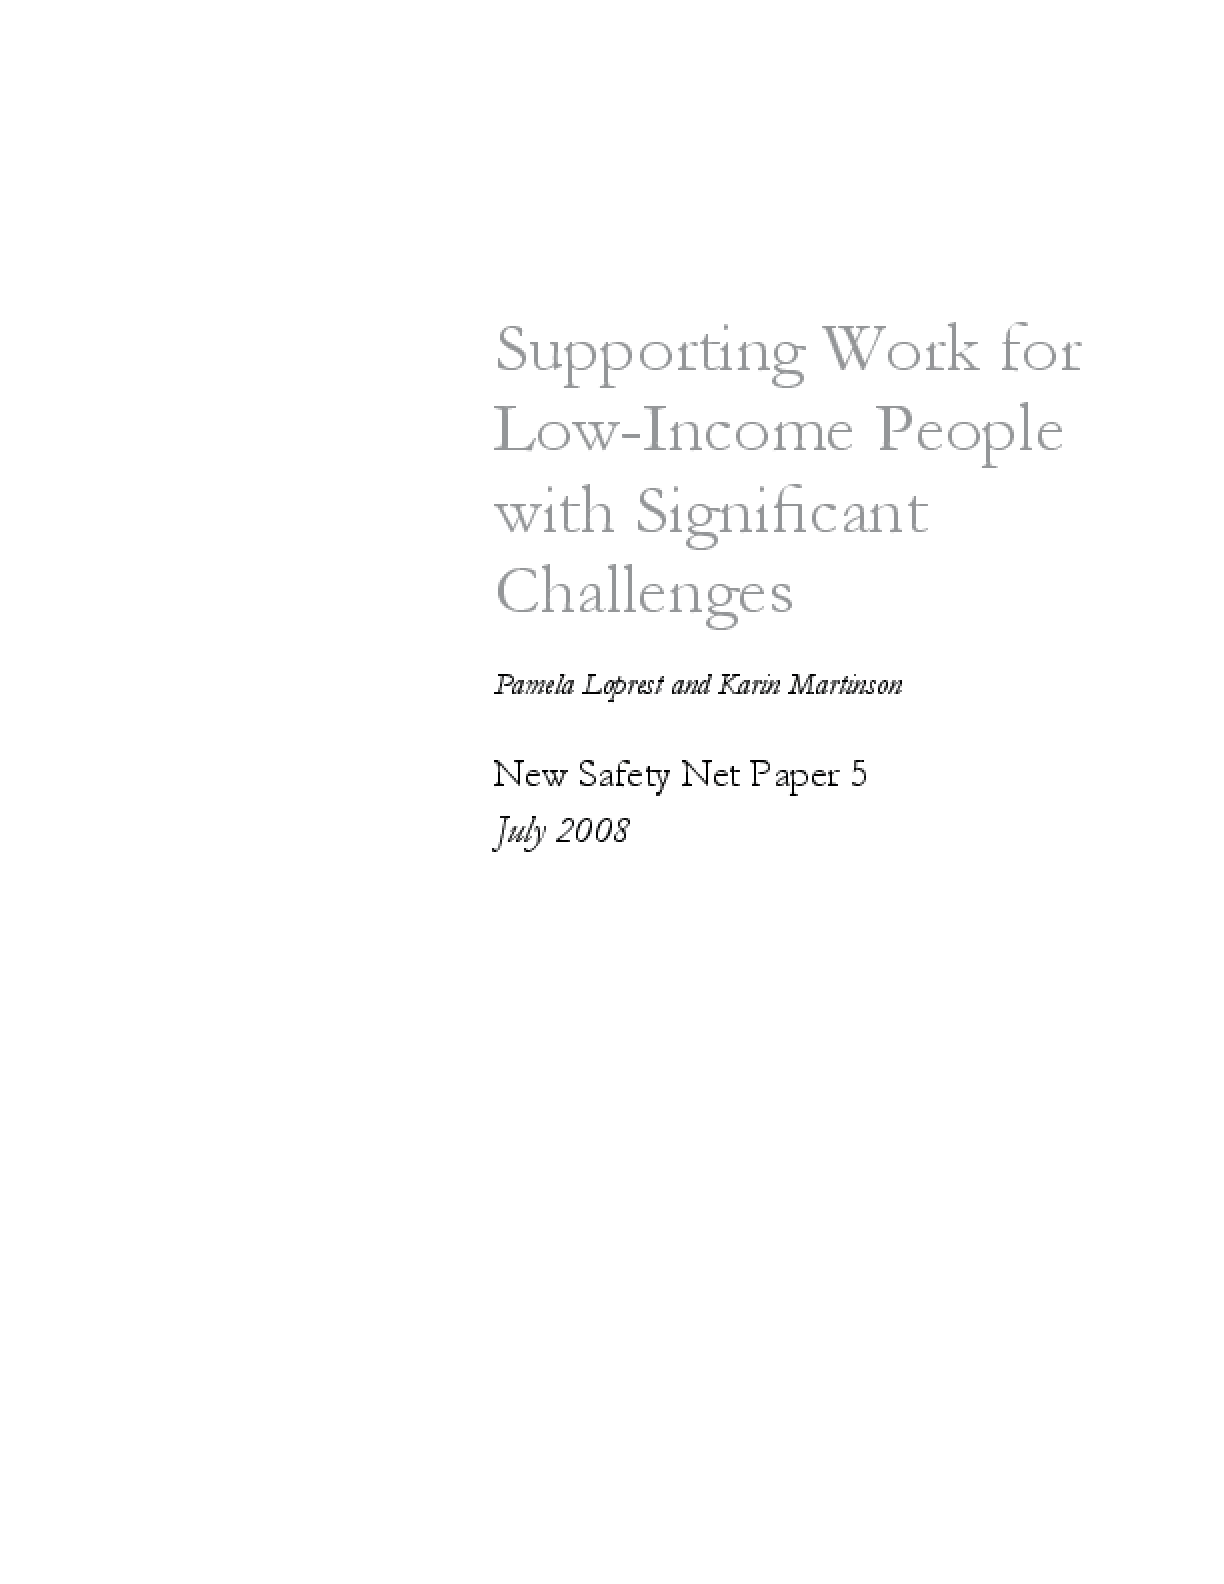 Supporting Work For Low-Income People With Significant Challenges